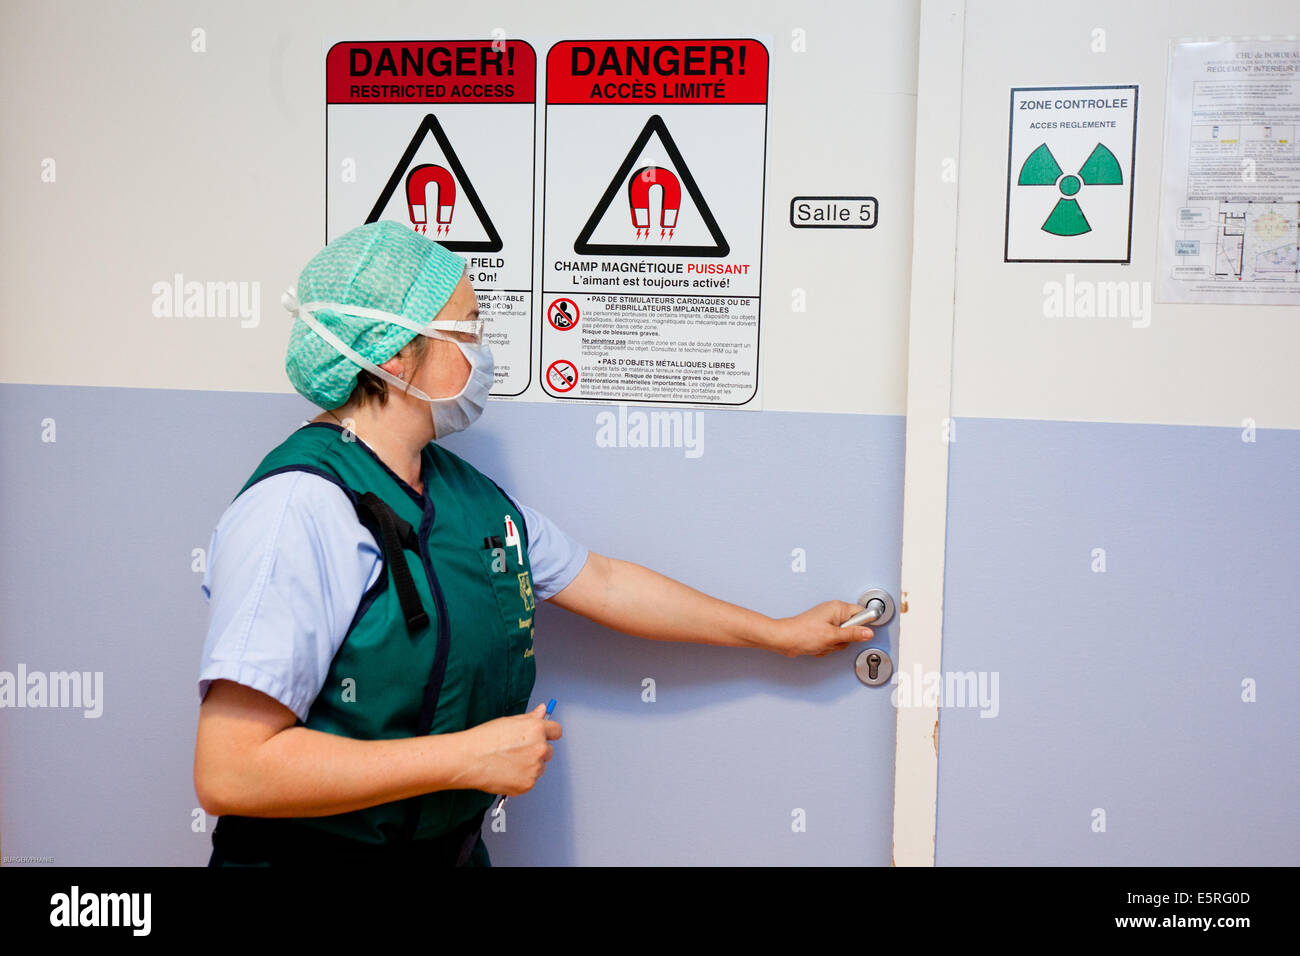 Radiation warning sign in radiology department at hospital. - Stock Image